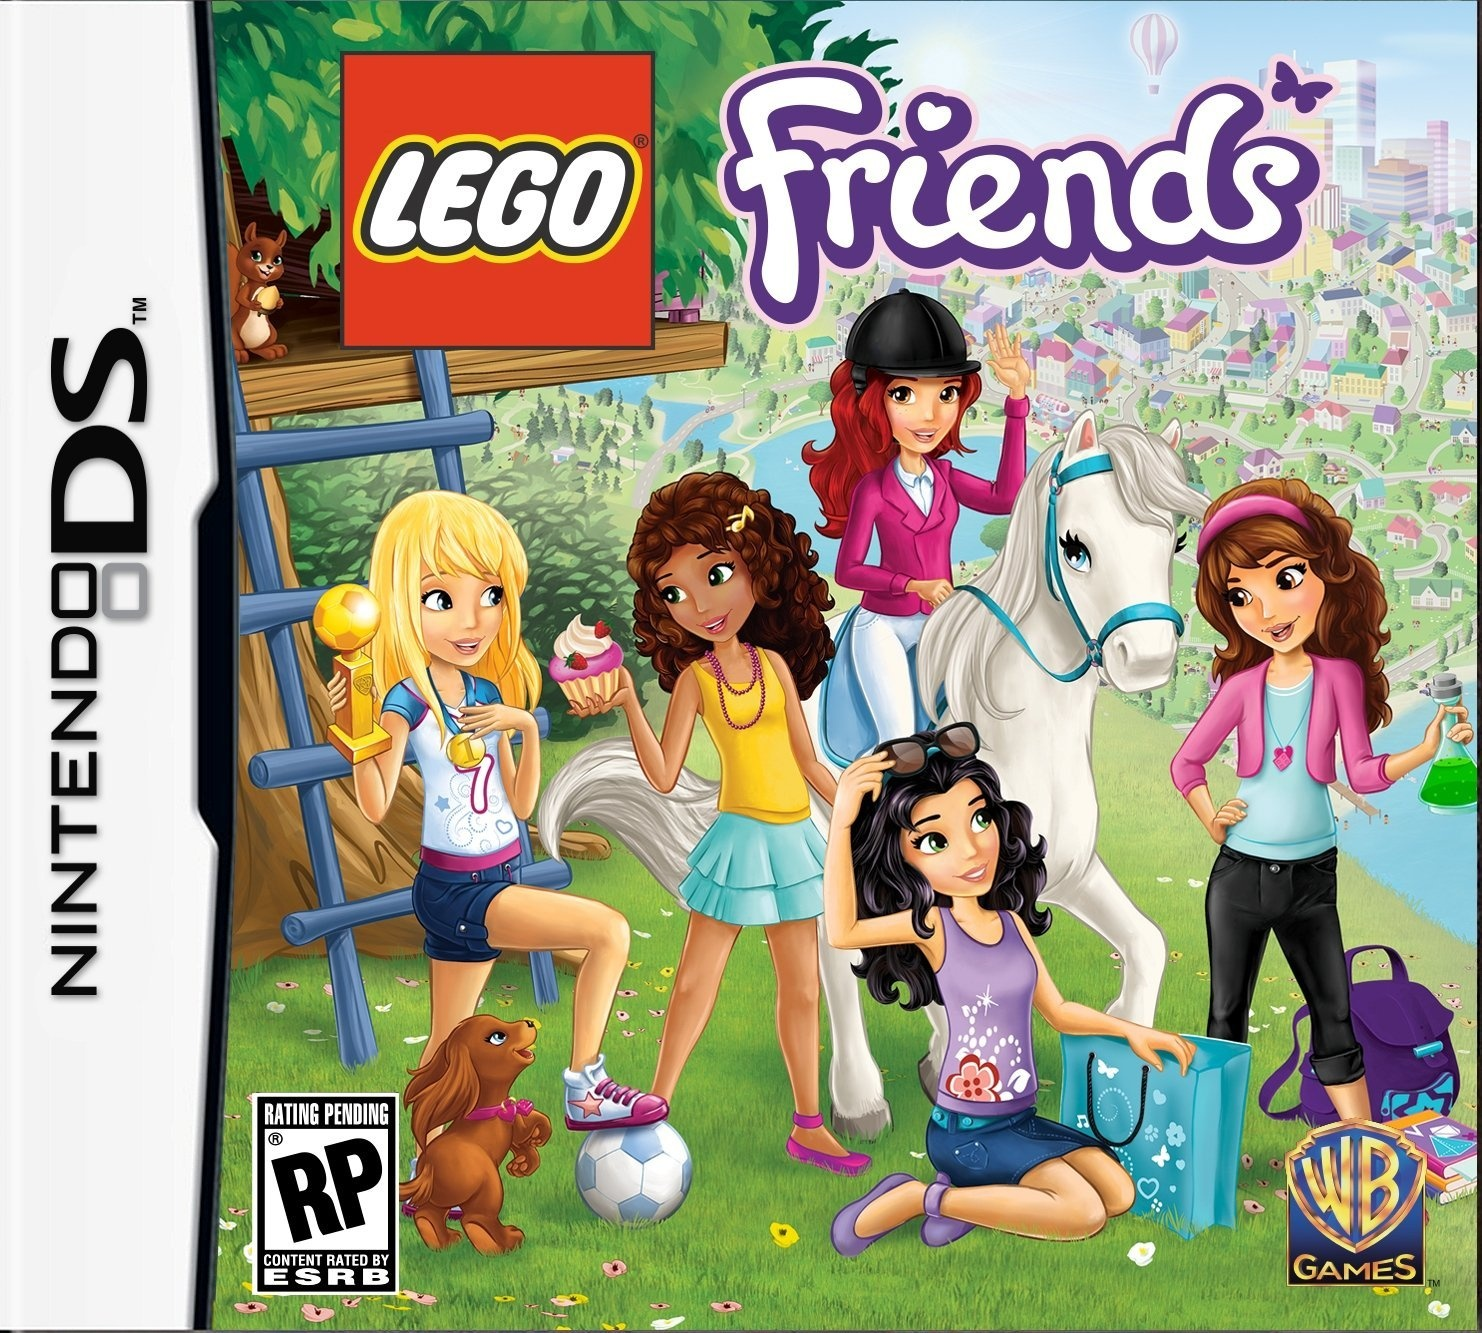 Front boxart of the game LEGO Friends (United States) on Nintendo DS